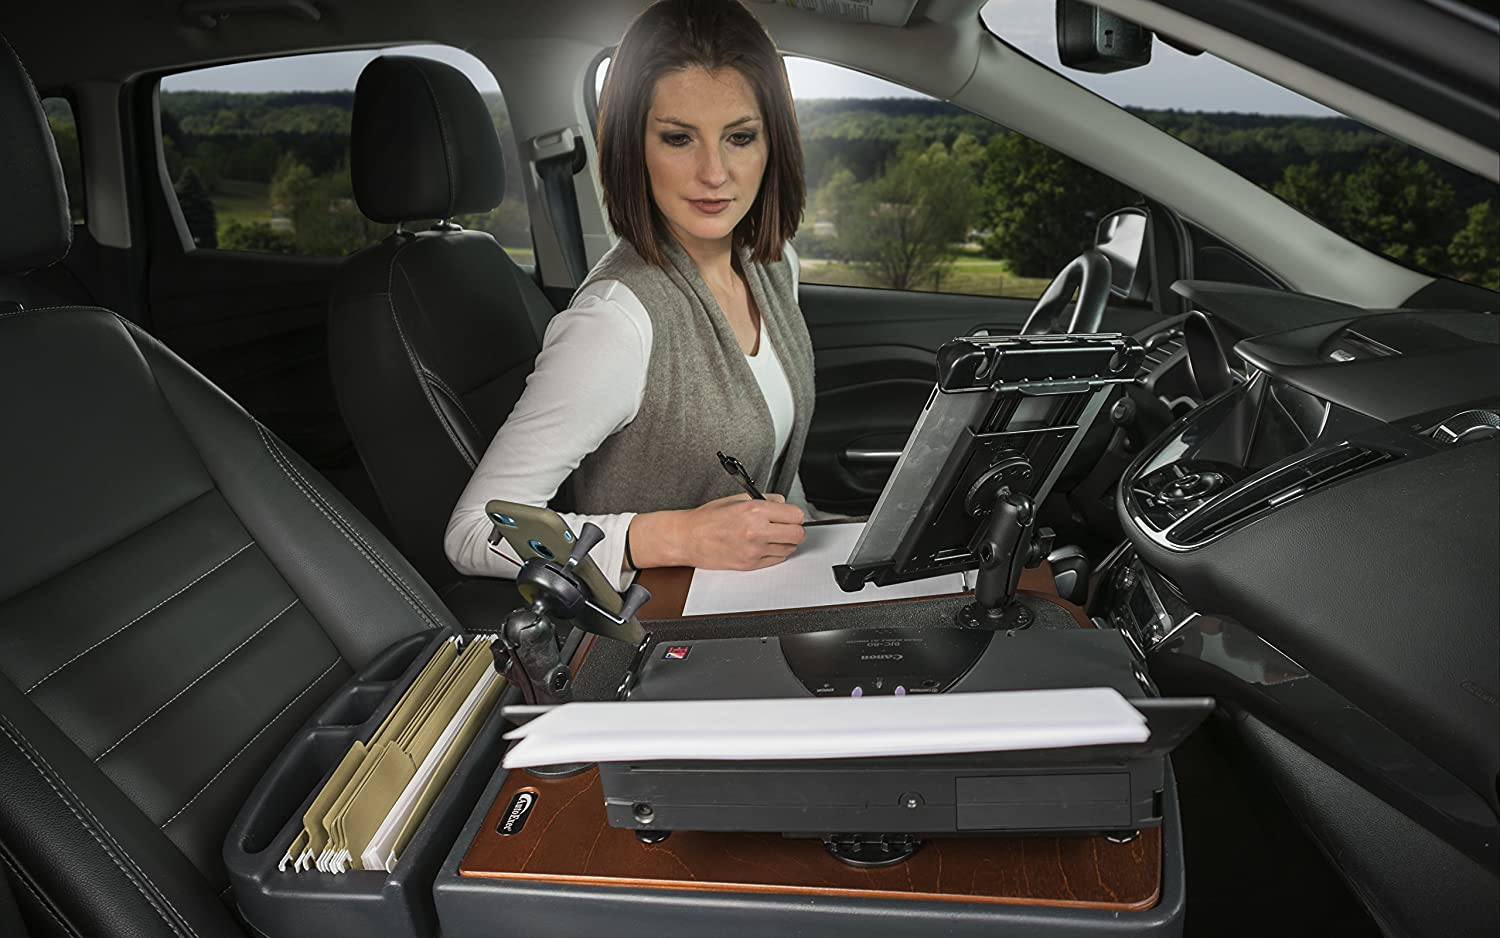 AutoExec AEGrip-03P-UC Urban Camouflage GripMaster Car Desk Finish with Printer Stand and Tablet Mount